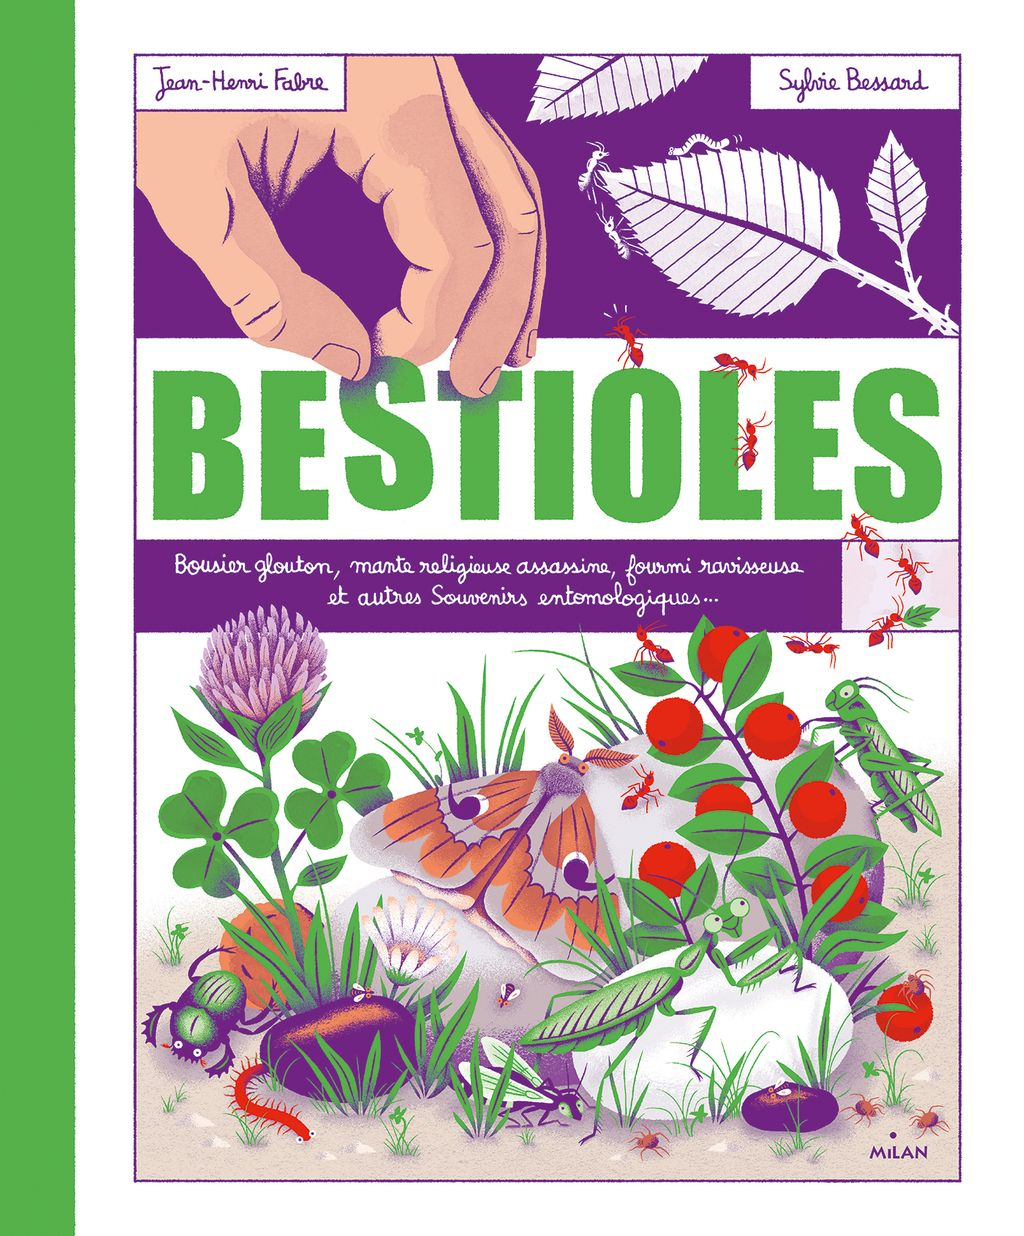 « Bestioles » cover